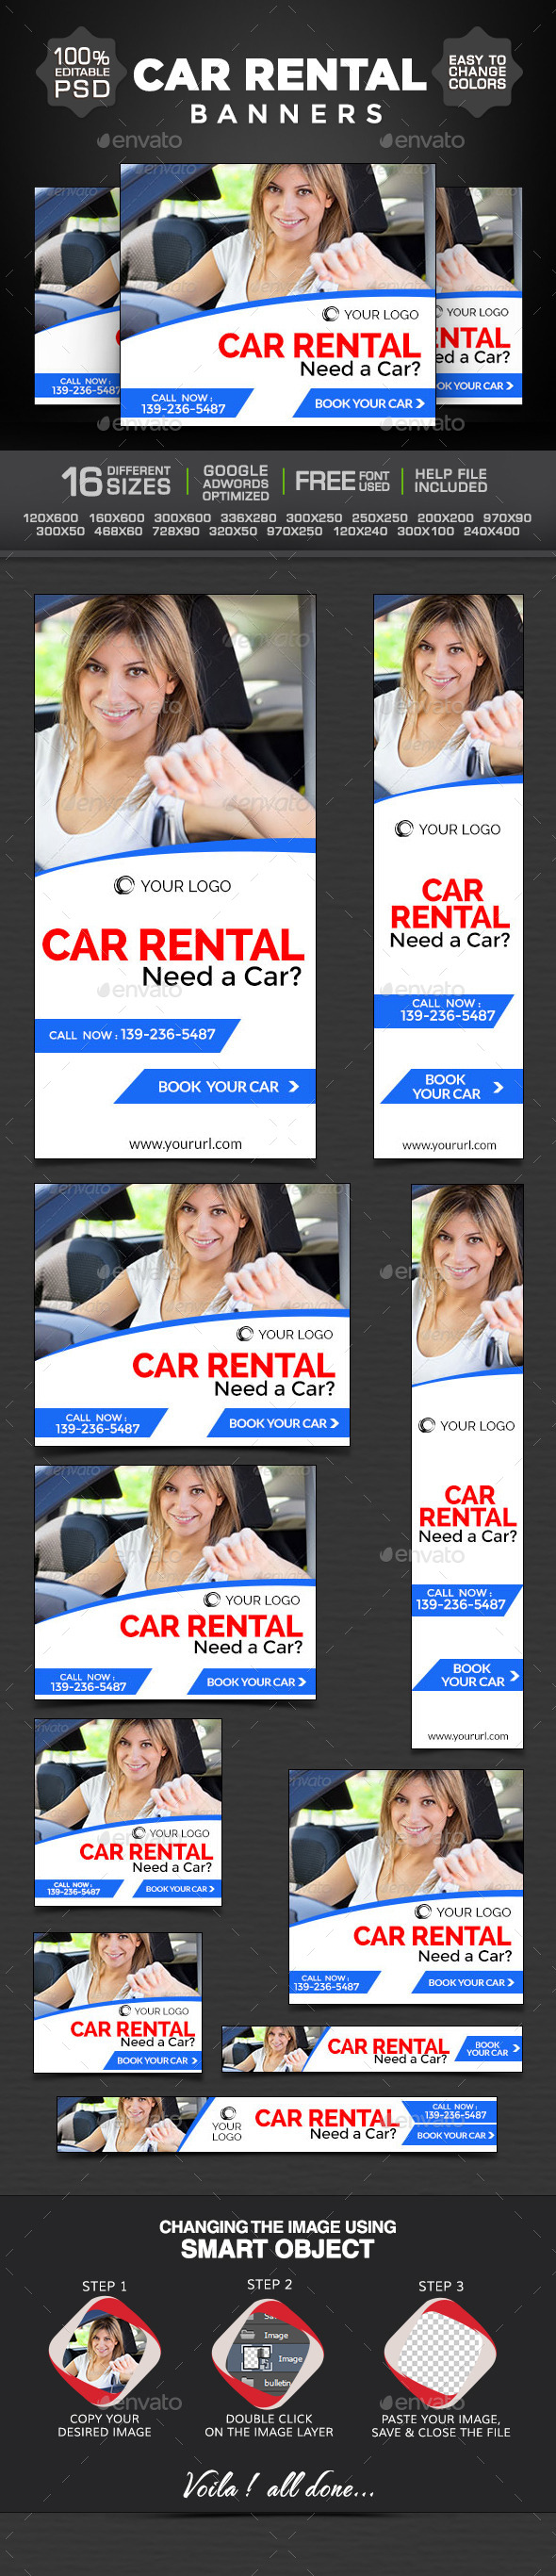 Car for Rent Banners - Banners & Ads Web Elements